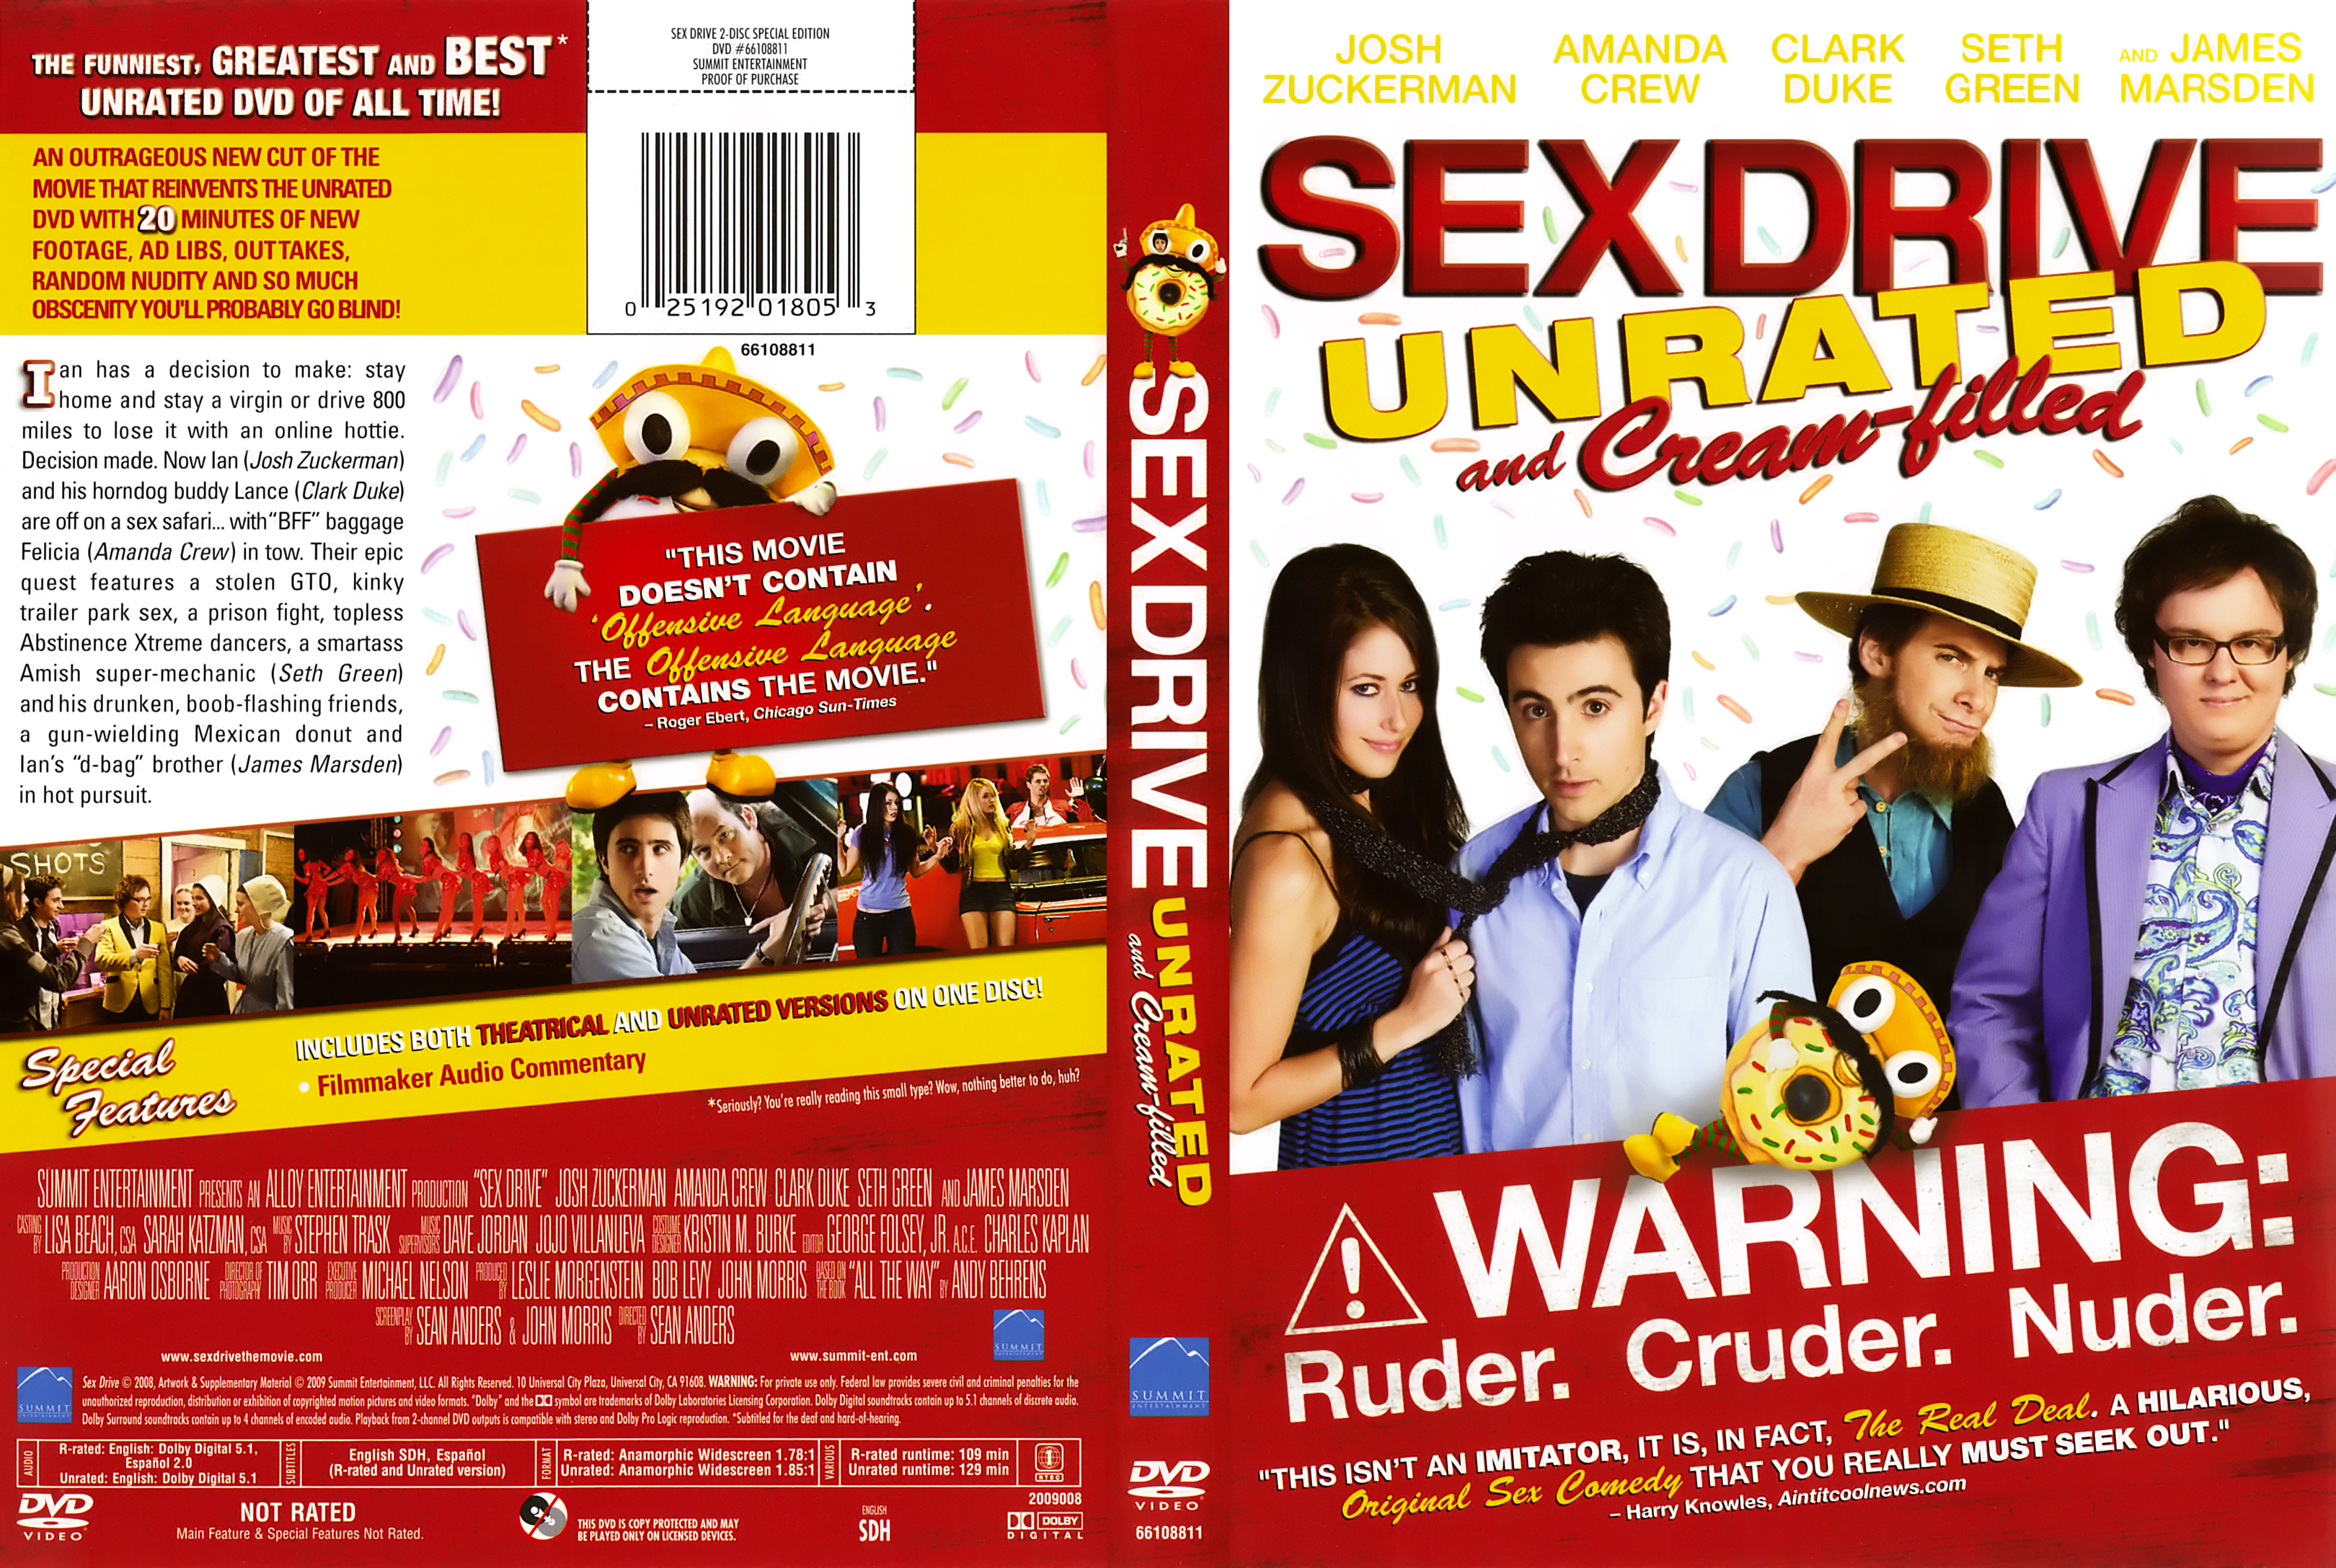 Sex drive movie rating